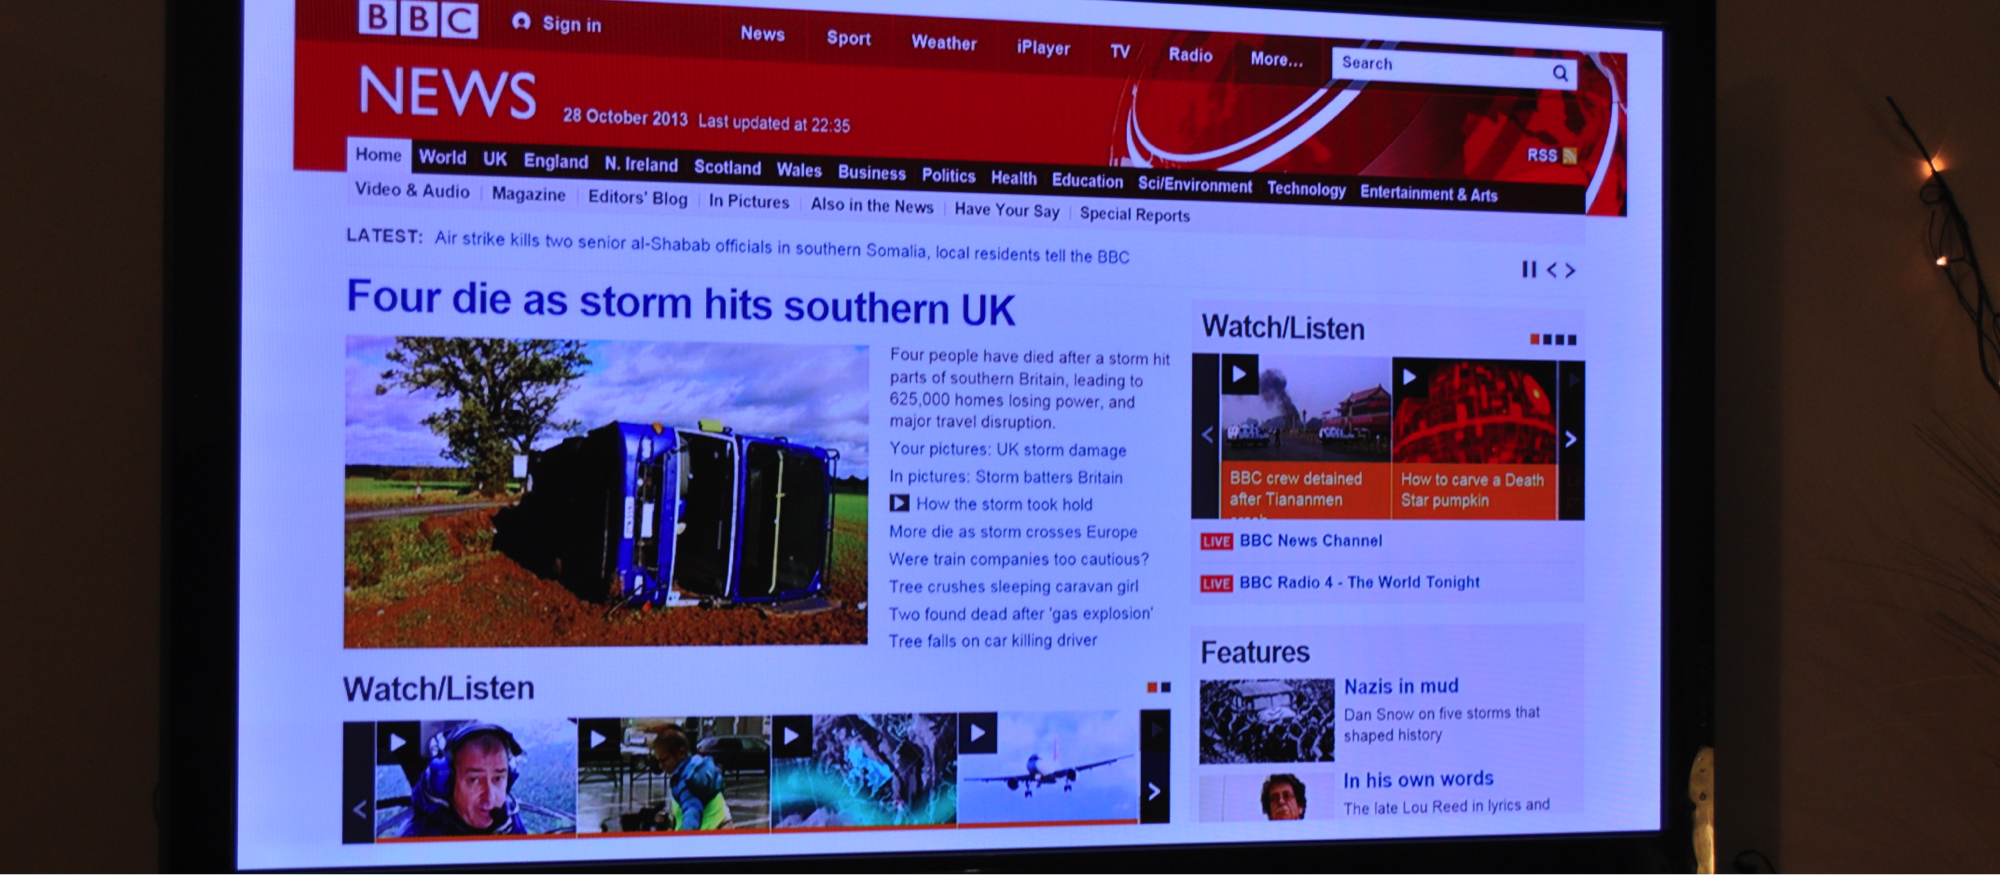 BBC News on an Xbox 360